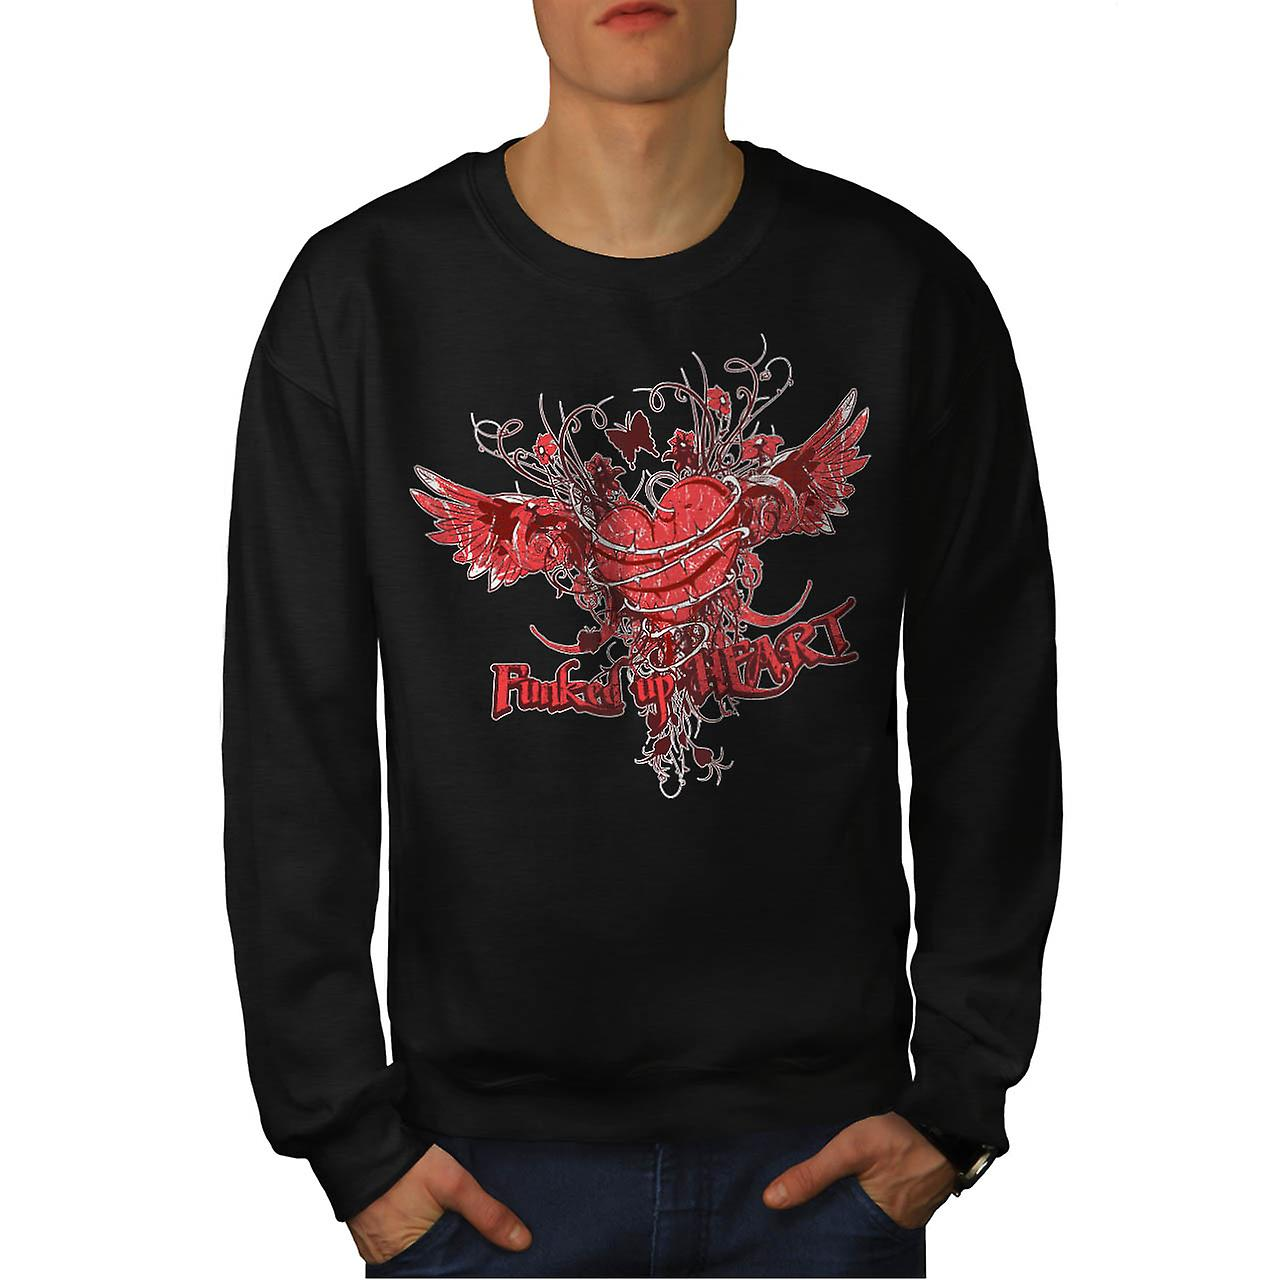 Funked Up coeur amour épine Rose hommes Black Sweatshirt | Wellcoda